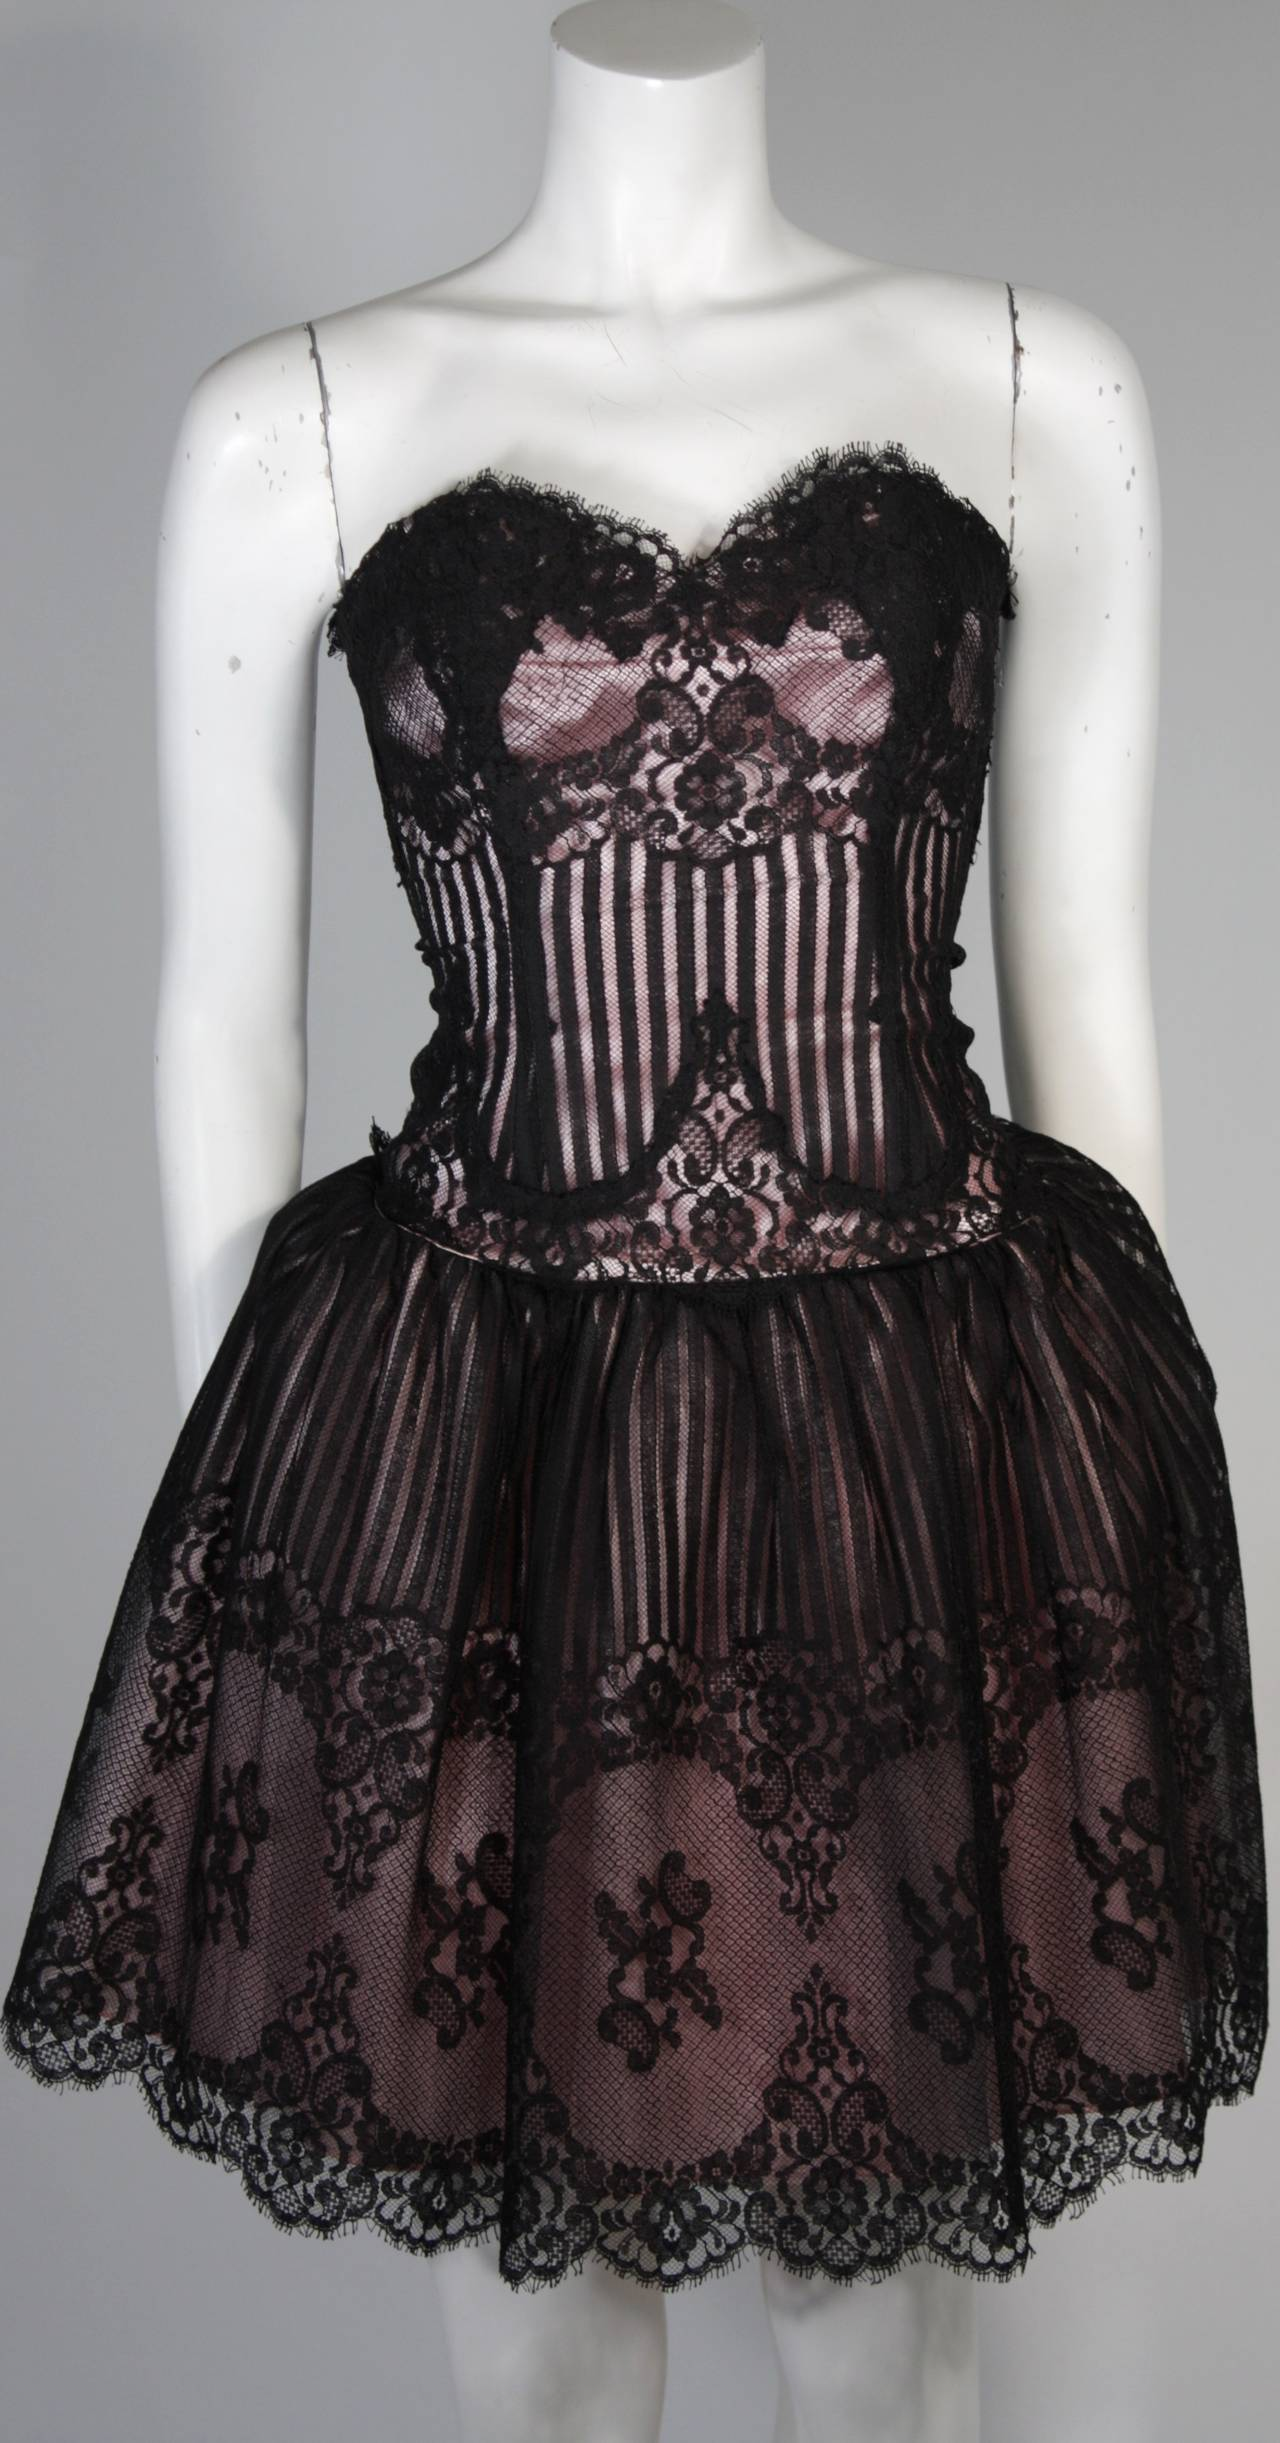 Victor Costa Strapless Black Lace Cocktail Dress with Pink Satin Size 40 3